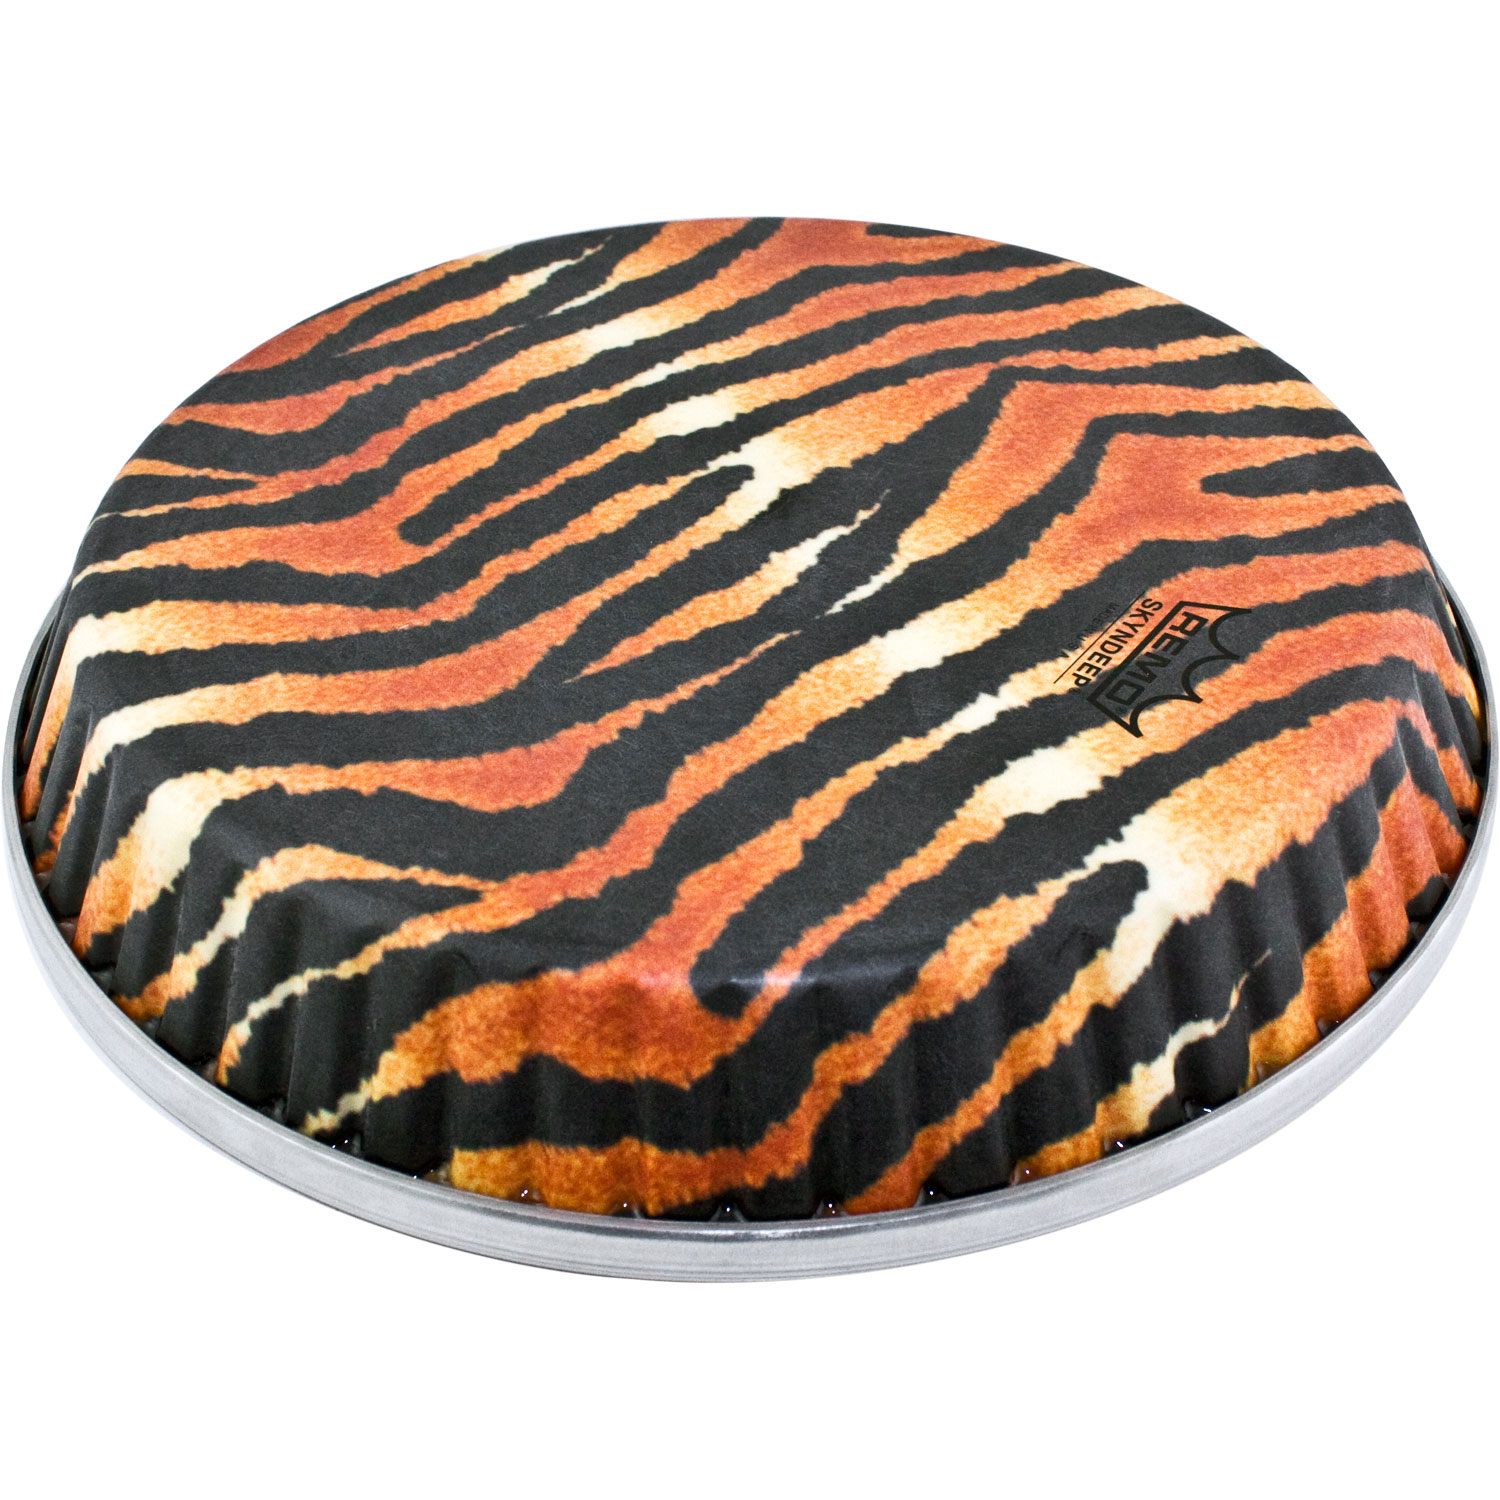 """Remo 9.75"""" Symmetry Skyndeep Conga Drum Head (D2 Collar) with Tiger Stripe Graphic"""